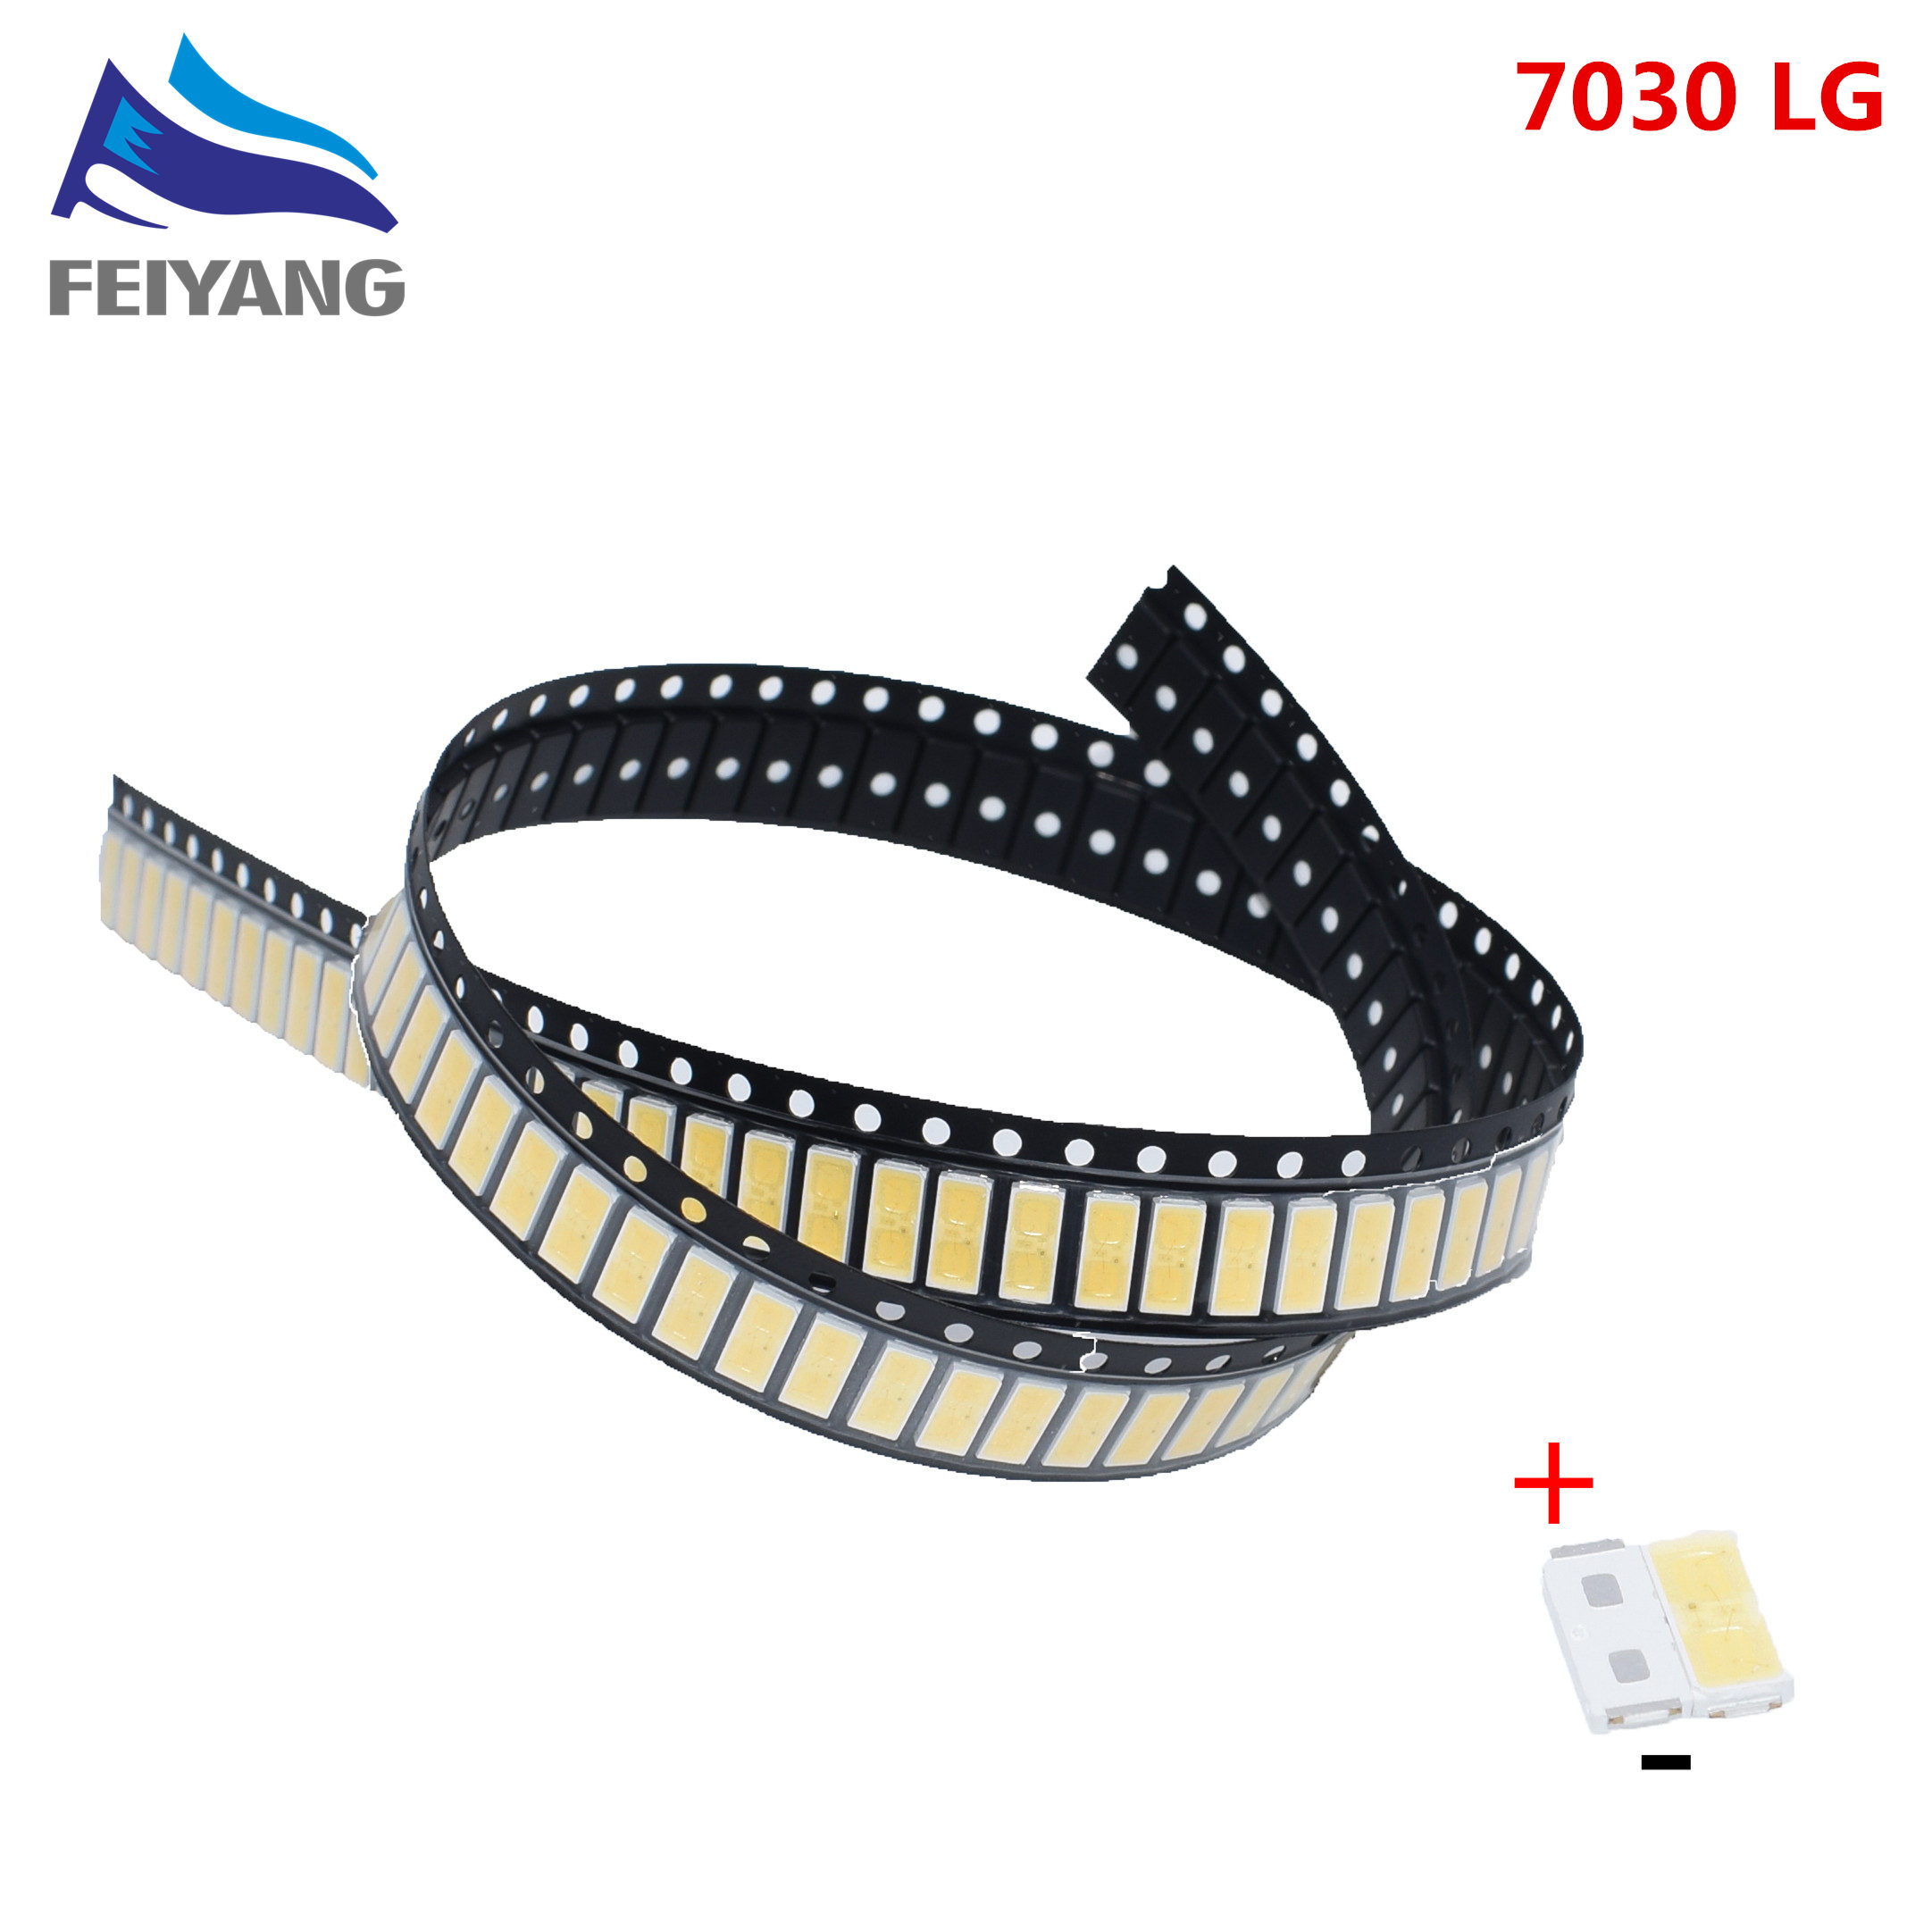 3000PCS Maintenance of <font><b>LG</b></font> <font><b>LED</b></font> LCD <font><b>TV</b></font> backlight lamp with light emitting diode <font><b>6V</b></font> tube 7030 SMD beads LEWWS73V15CZ00 image